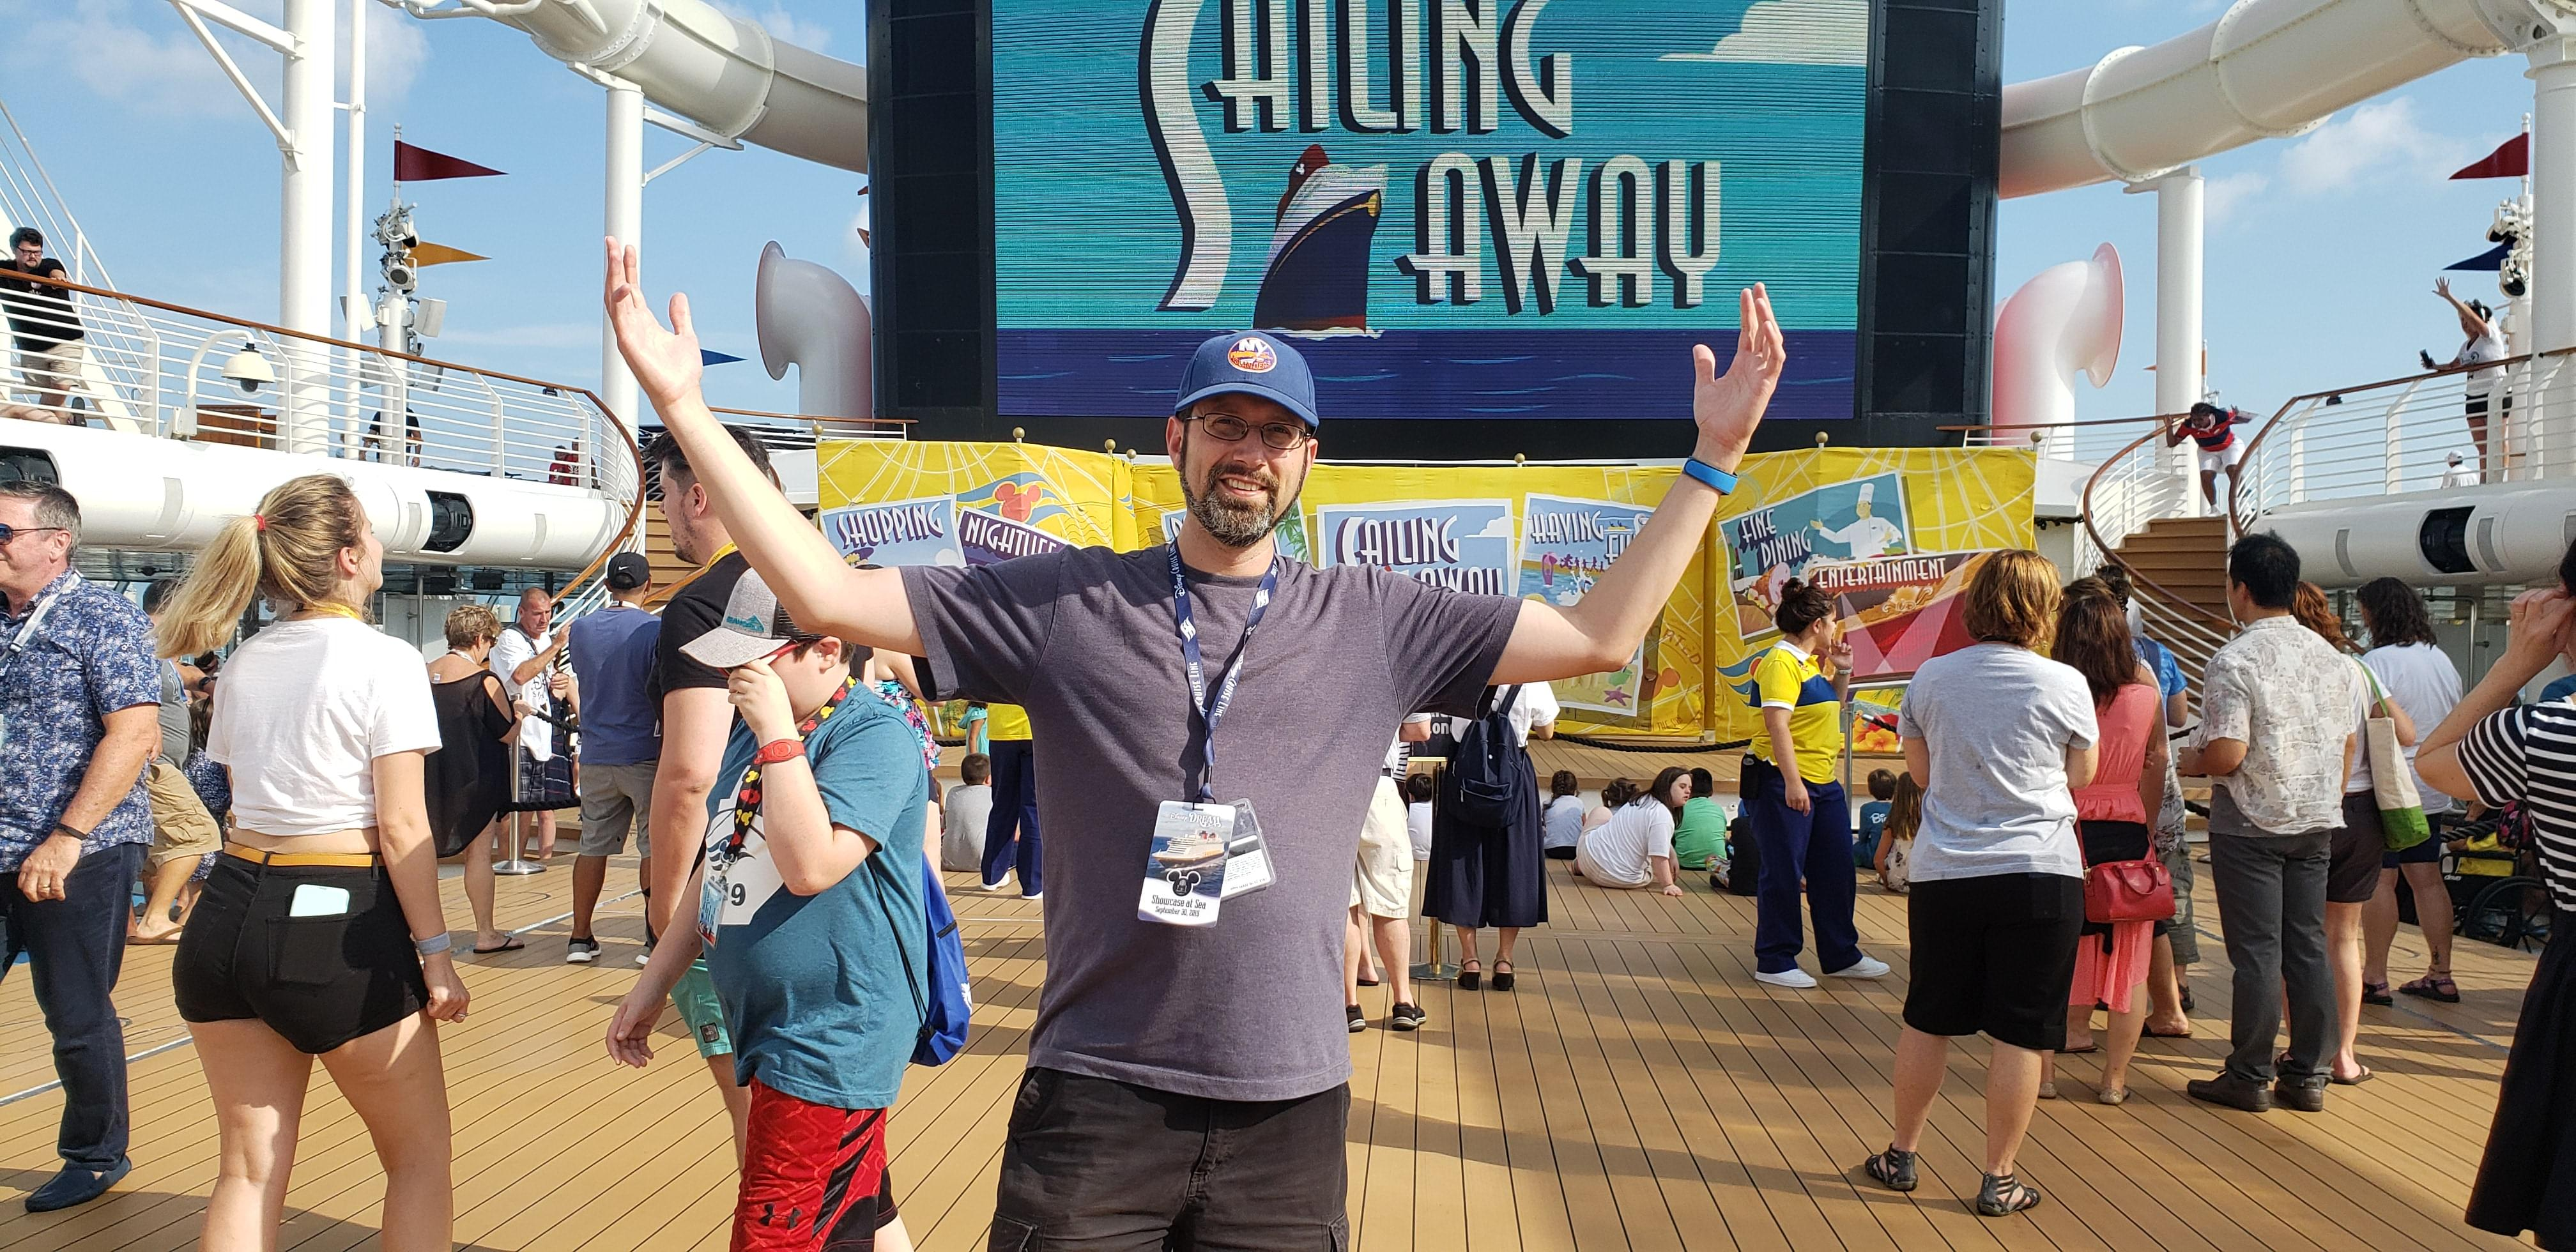 This is all you need to know for when you win your Disney Cruise!